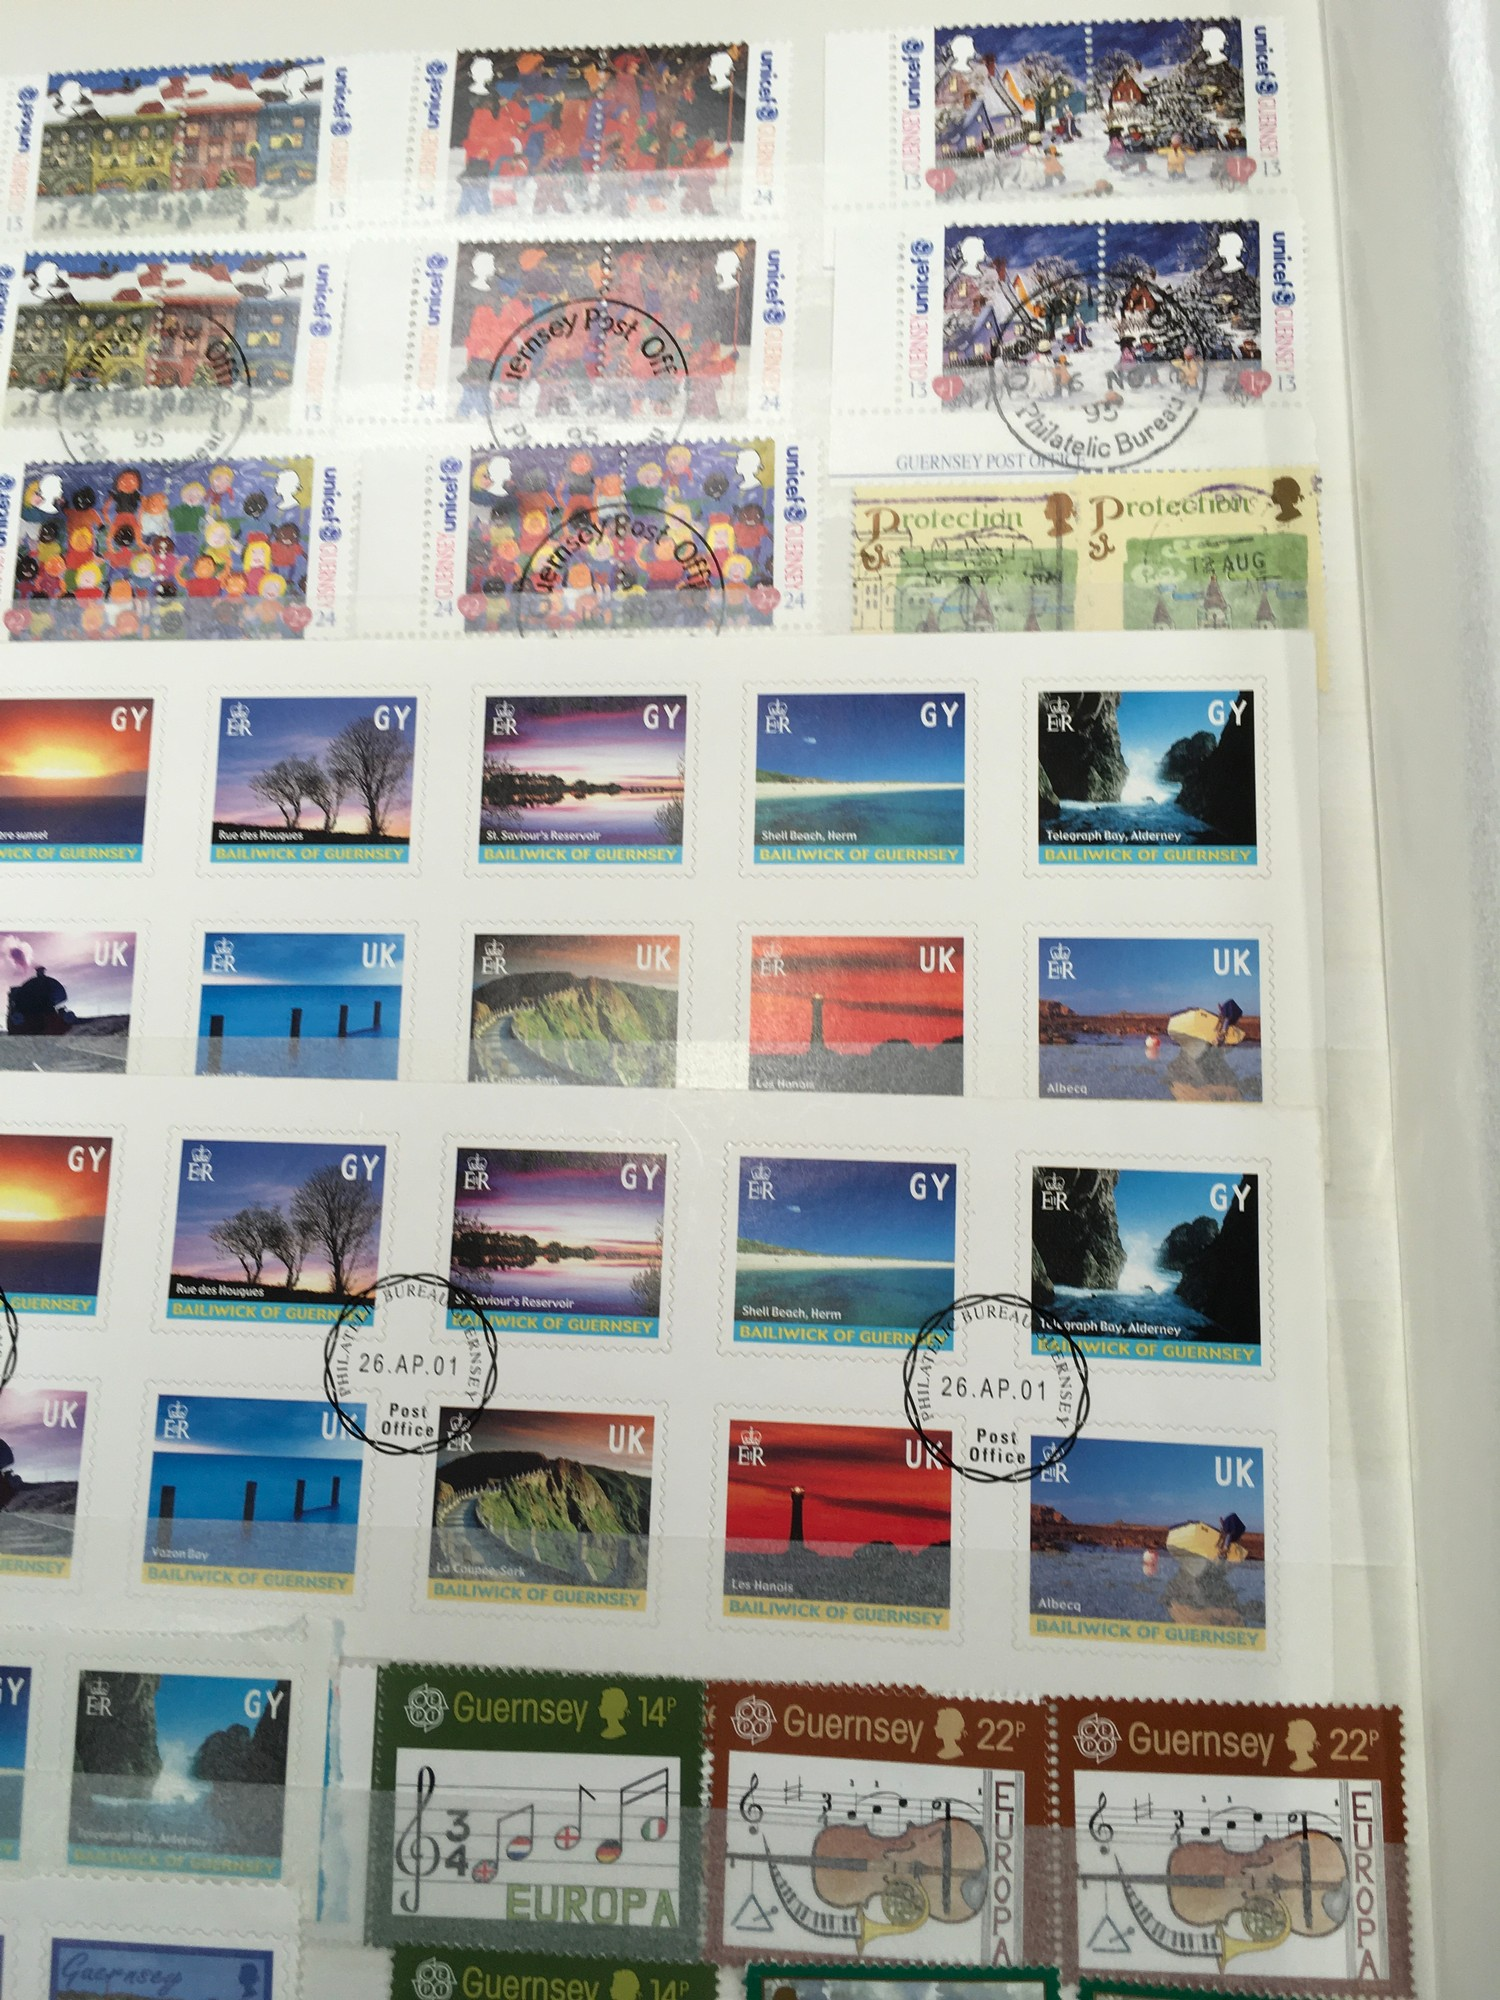 3 x Albums containing Channel Islands, Jersey Guernsey and Alderney over £800 in mint stamps. - Image 3 of 21